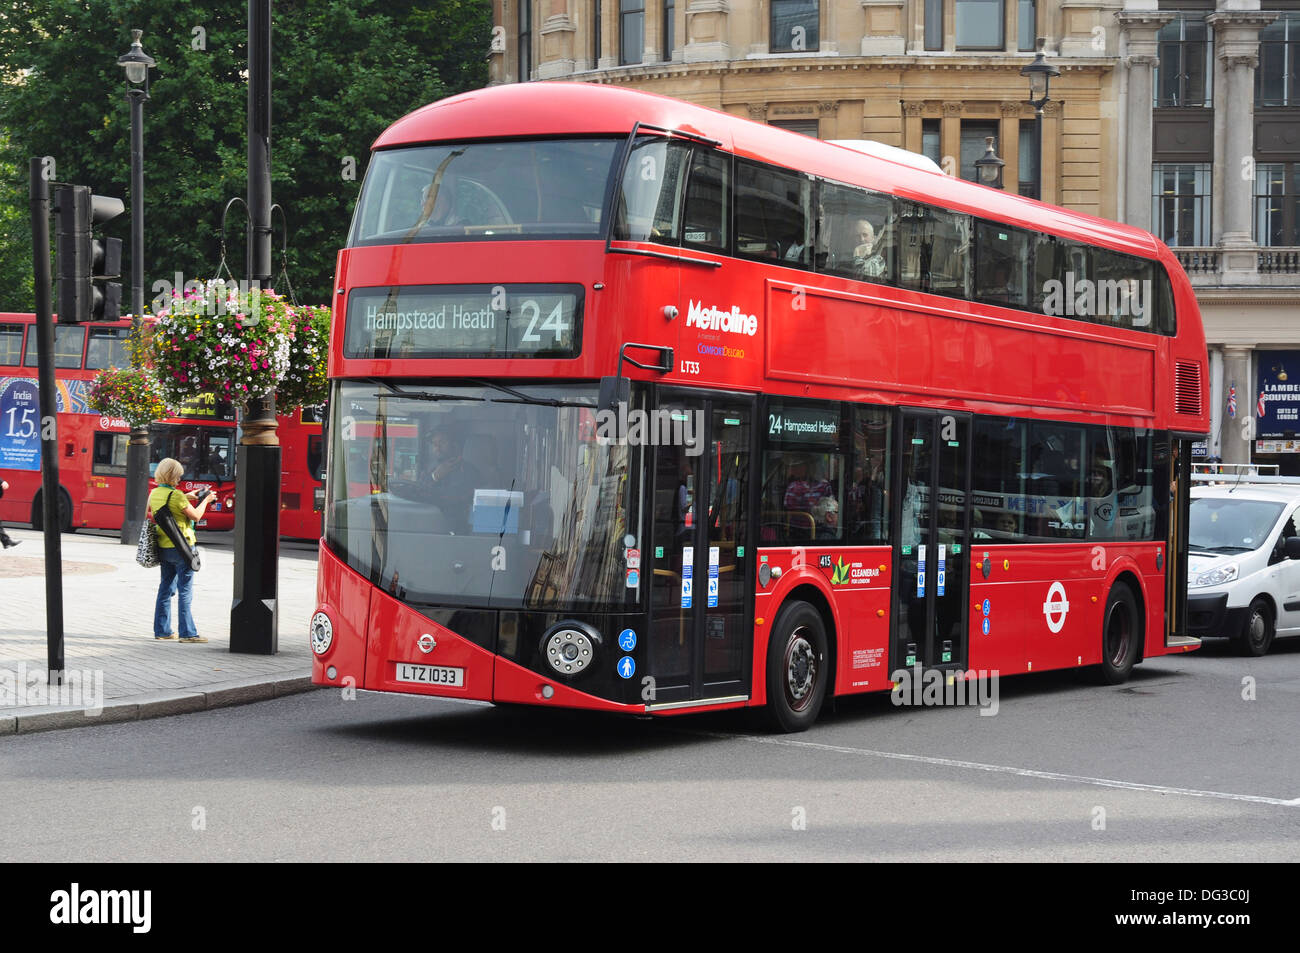 'New bus for London' (commonly known as NB4L or New Routemaster), Near Trafalgar Square, London - Stock Image